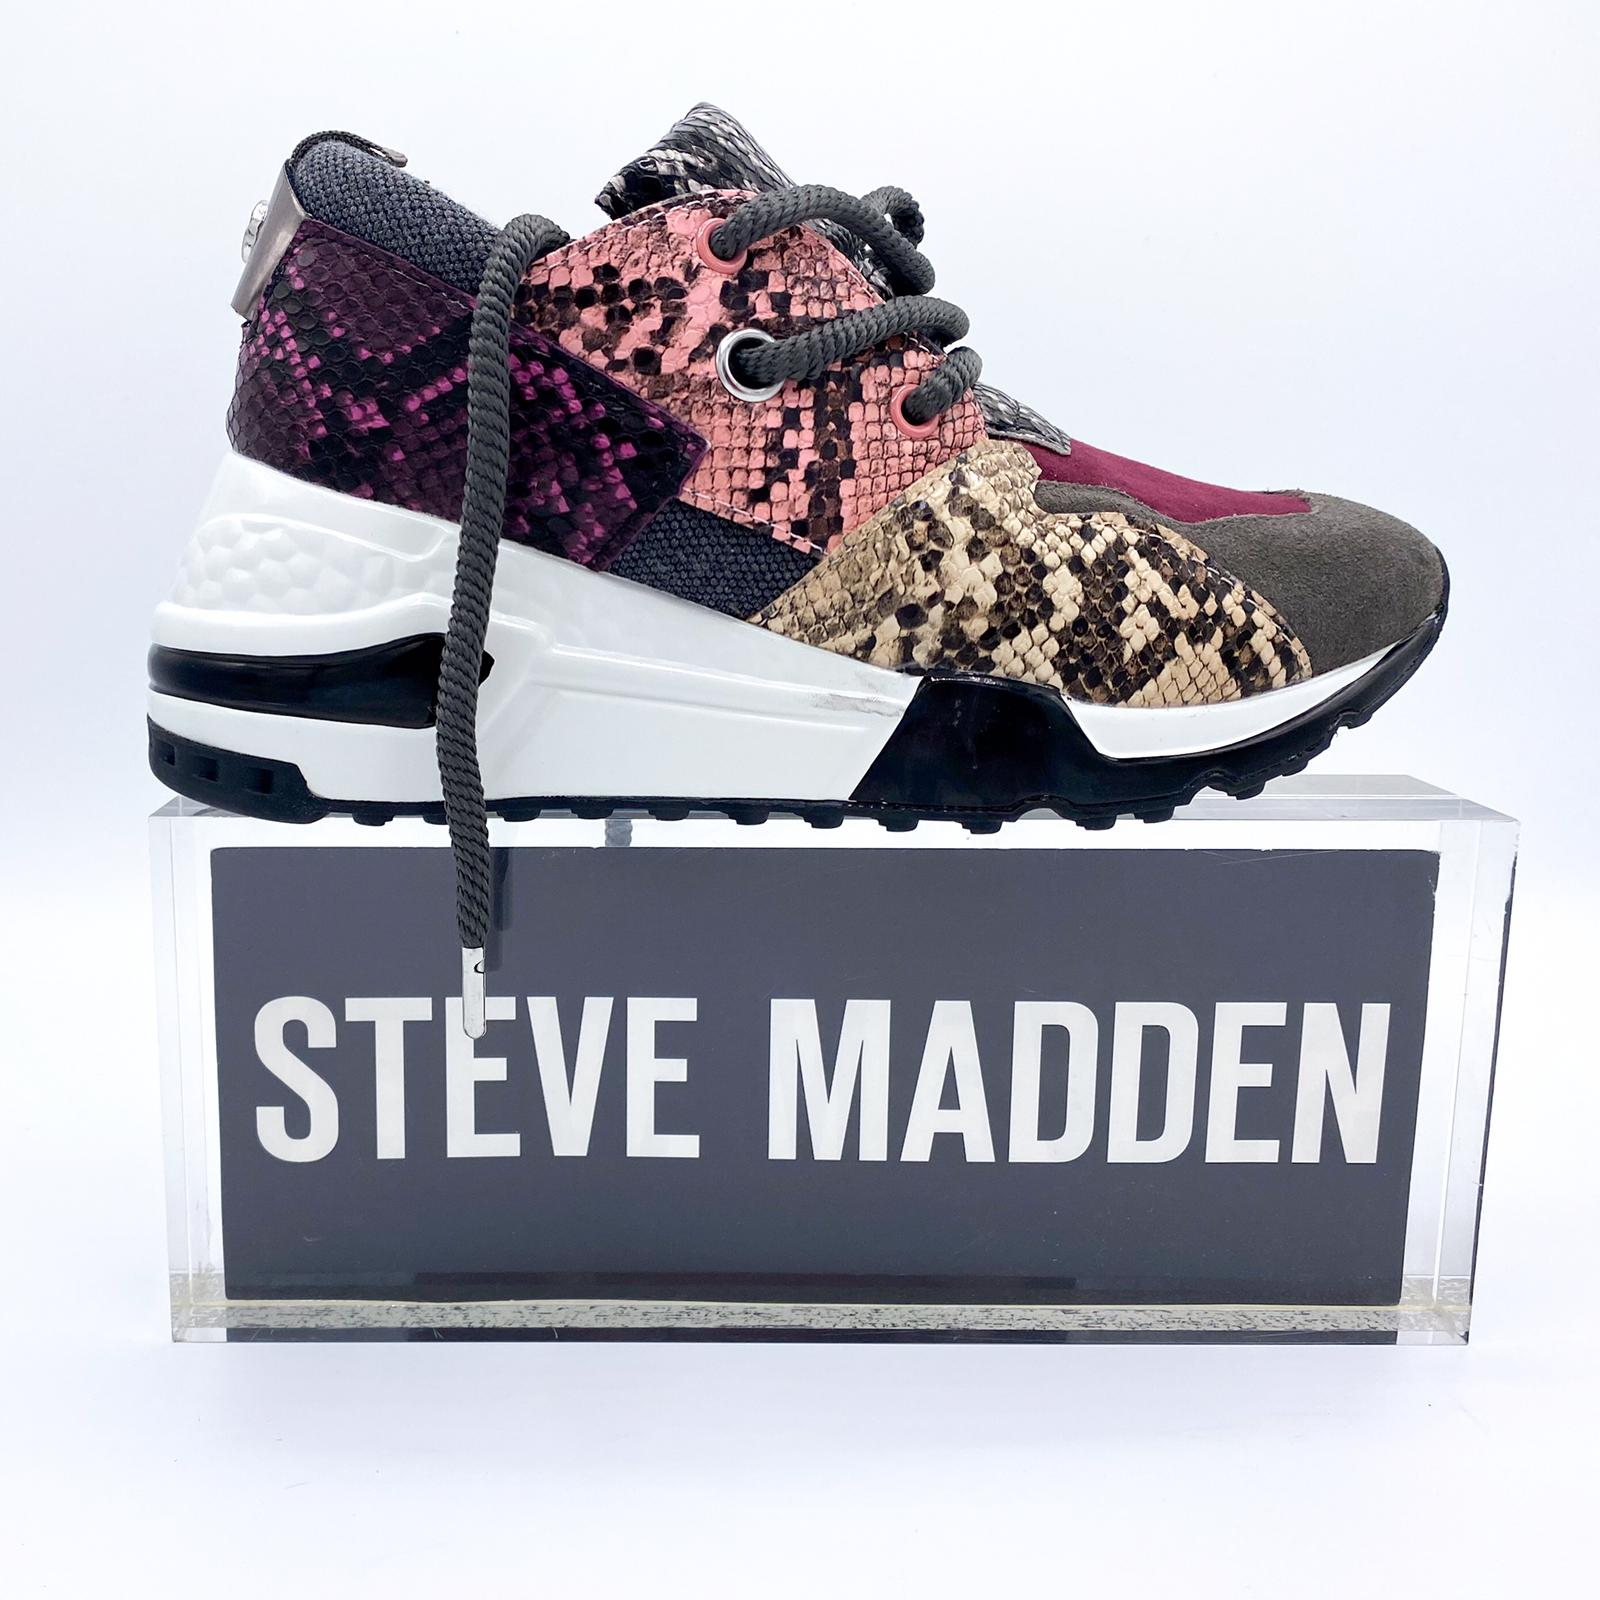 Sneakers Cliff Steve Madden